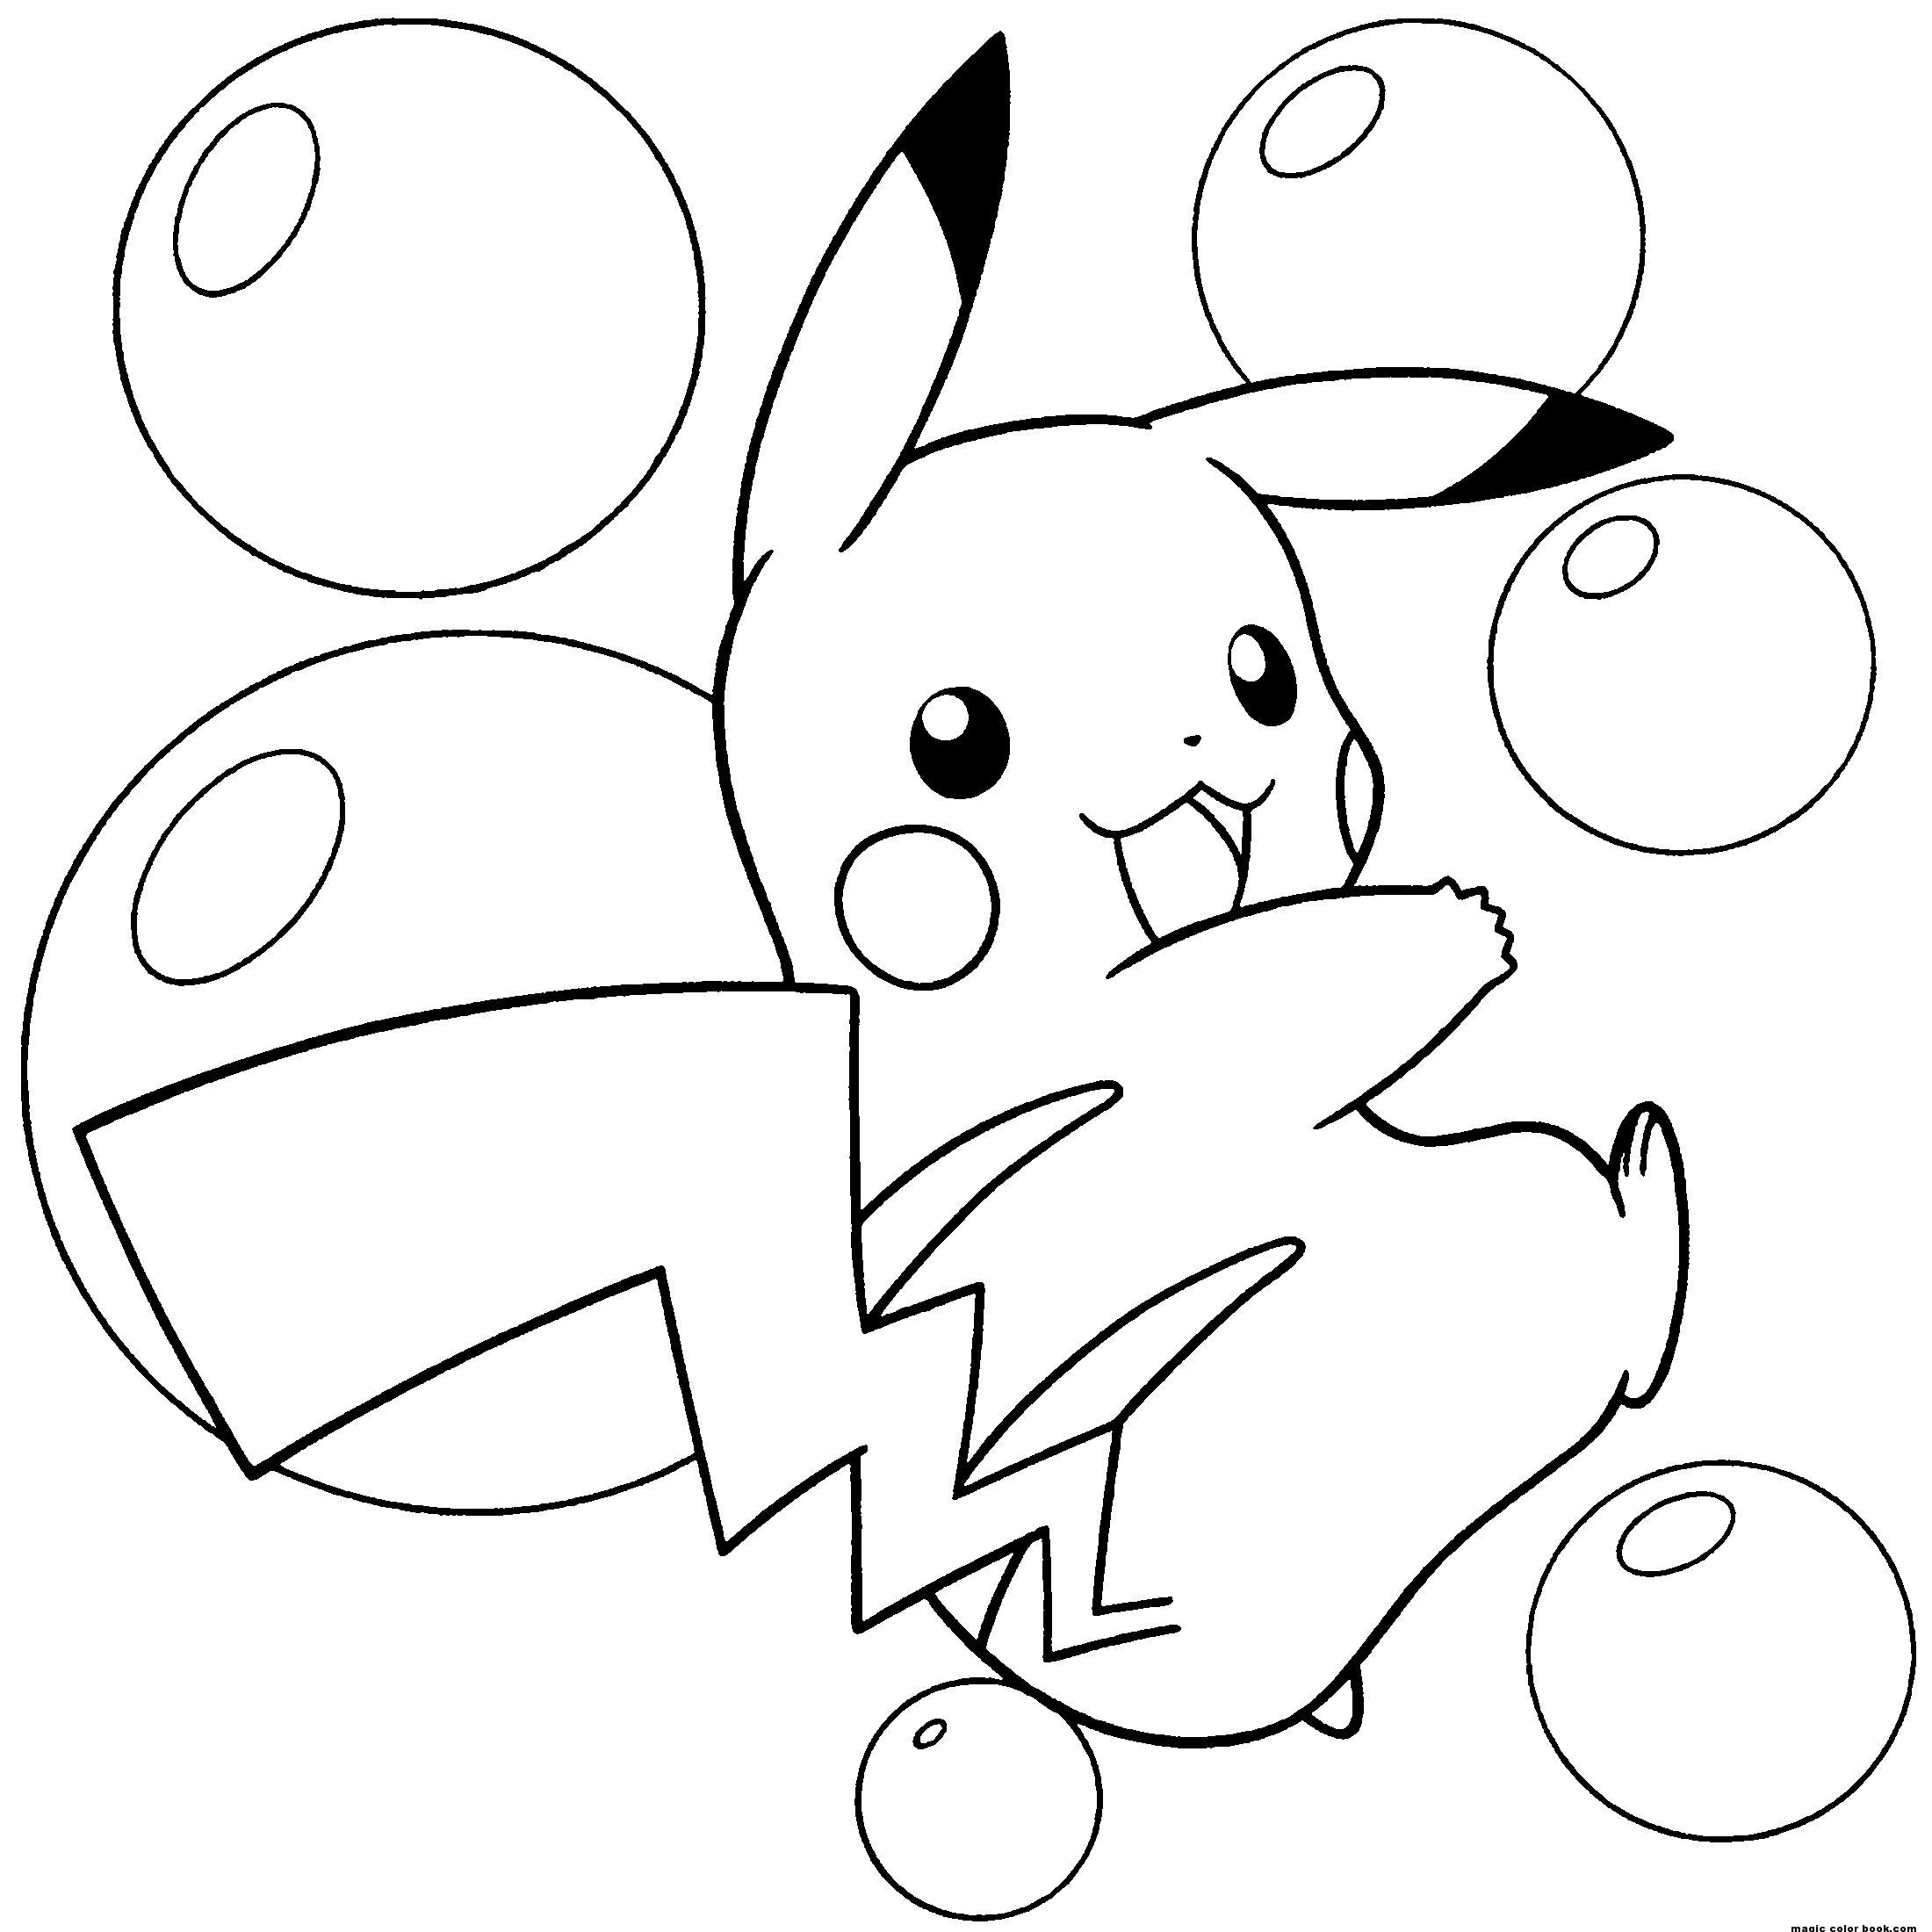 pikachu coloring sheet pikachu coloring pages to download and print for free coloring pikachu sheet